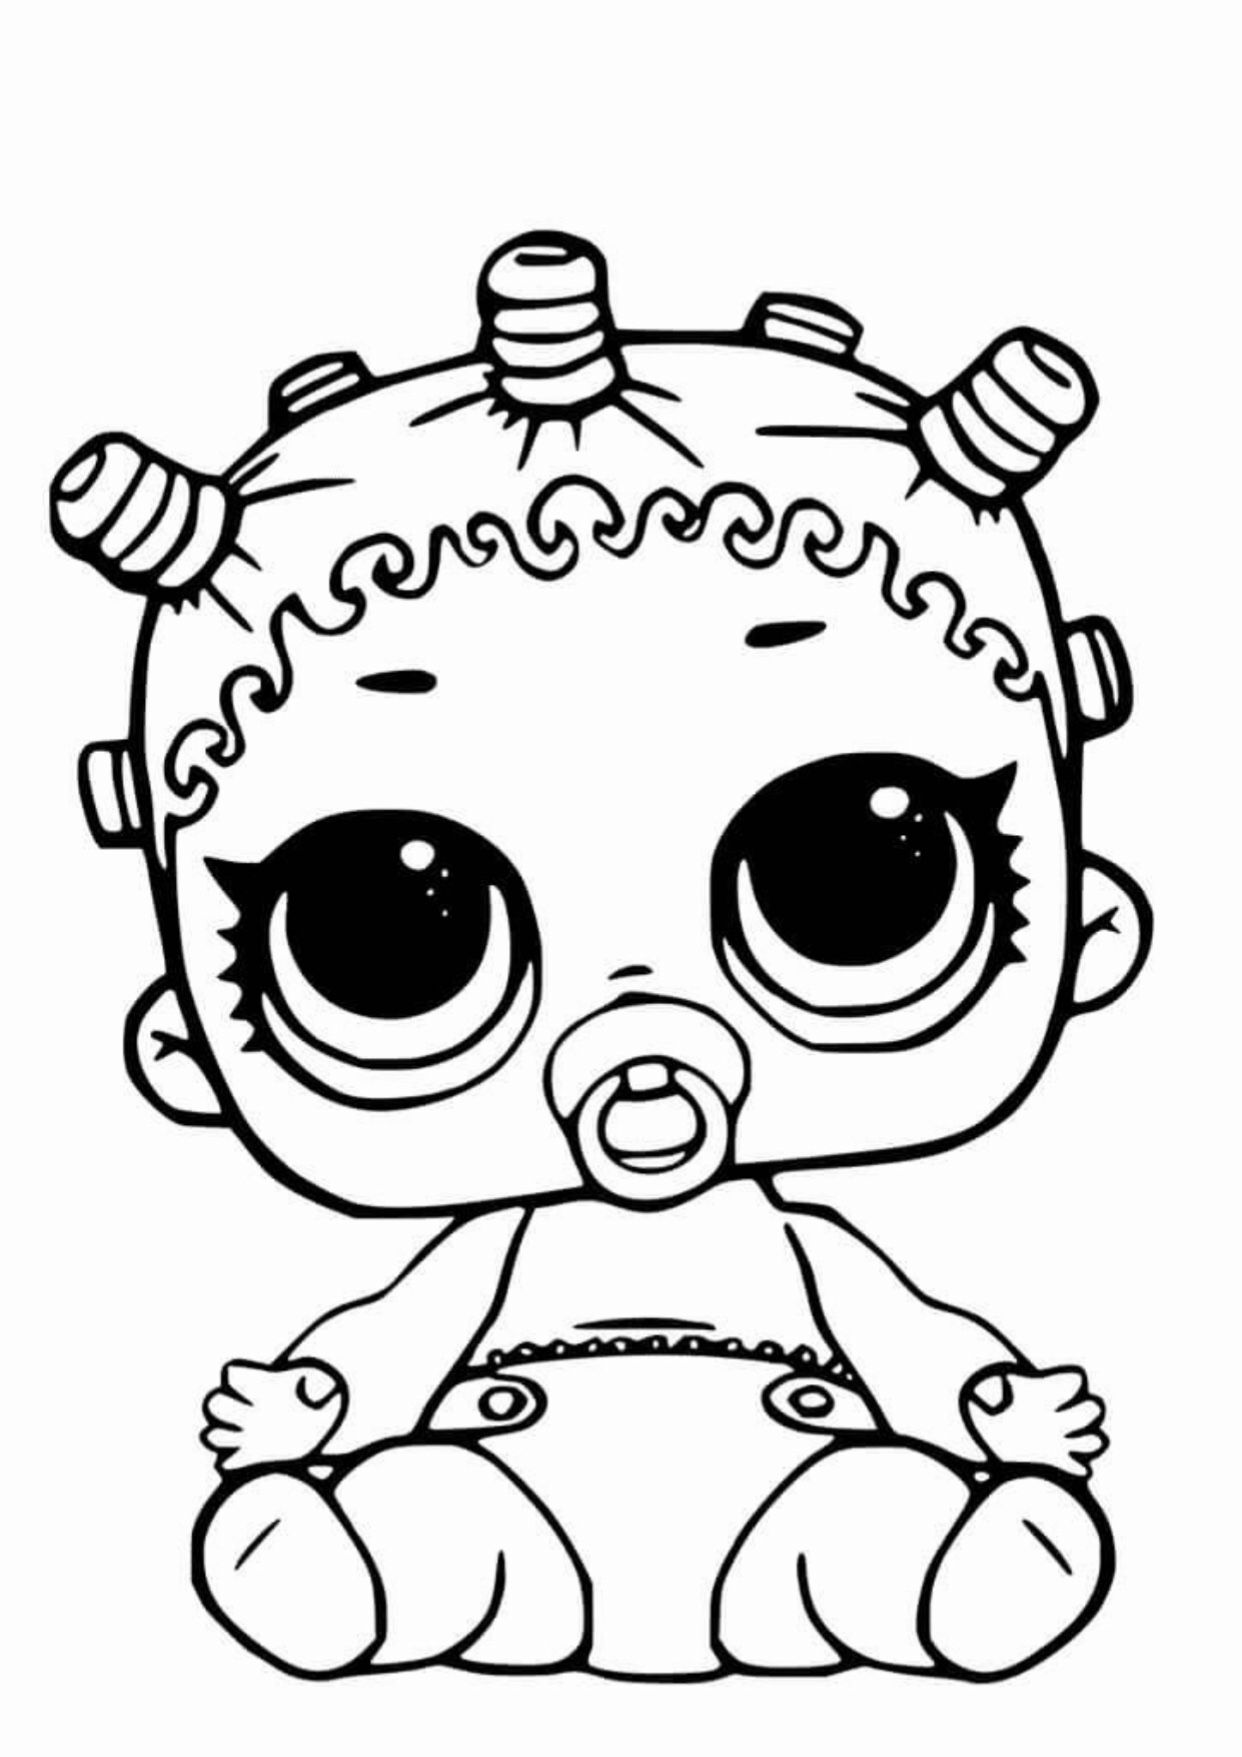 Lol Lil Sister Coloring Page Toddler Coloring Book Hello Kitty Coloring Mermaid Coloring Pages